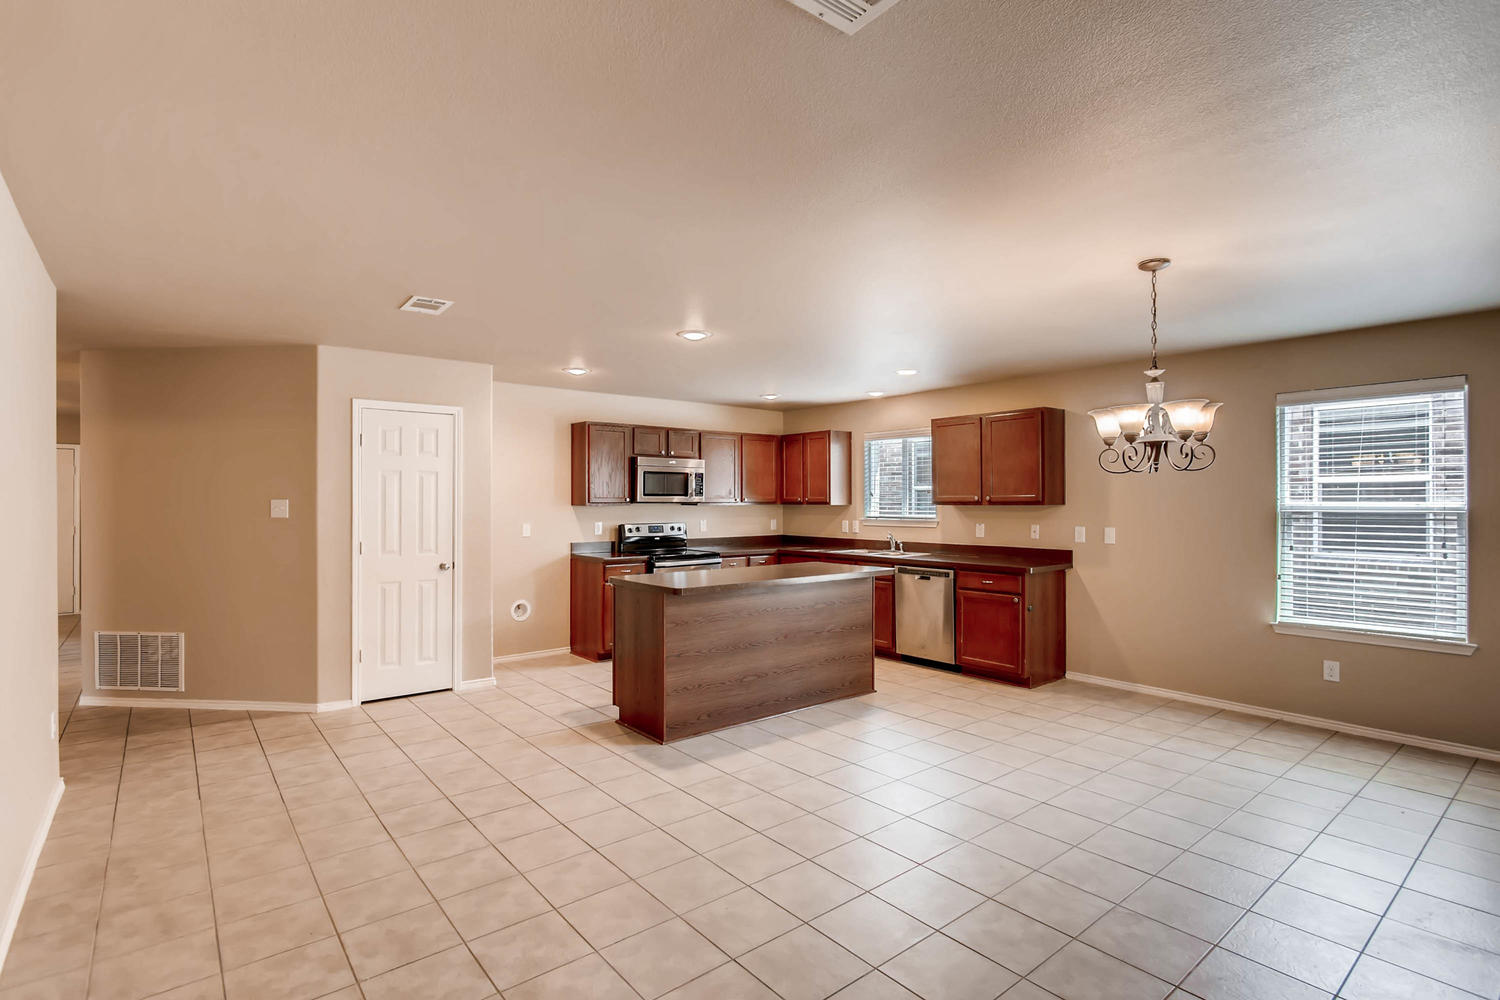 Photo of 1456 Willoughby Way, Little Elm, TX, 75068